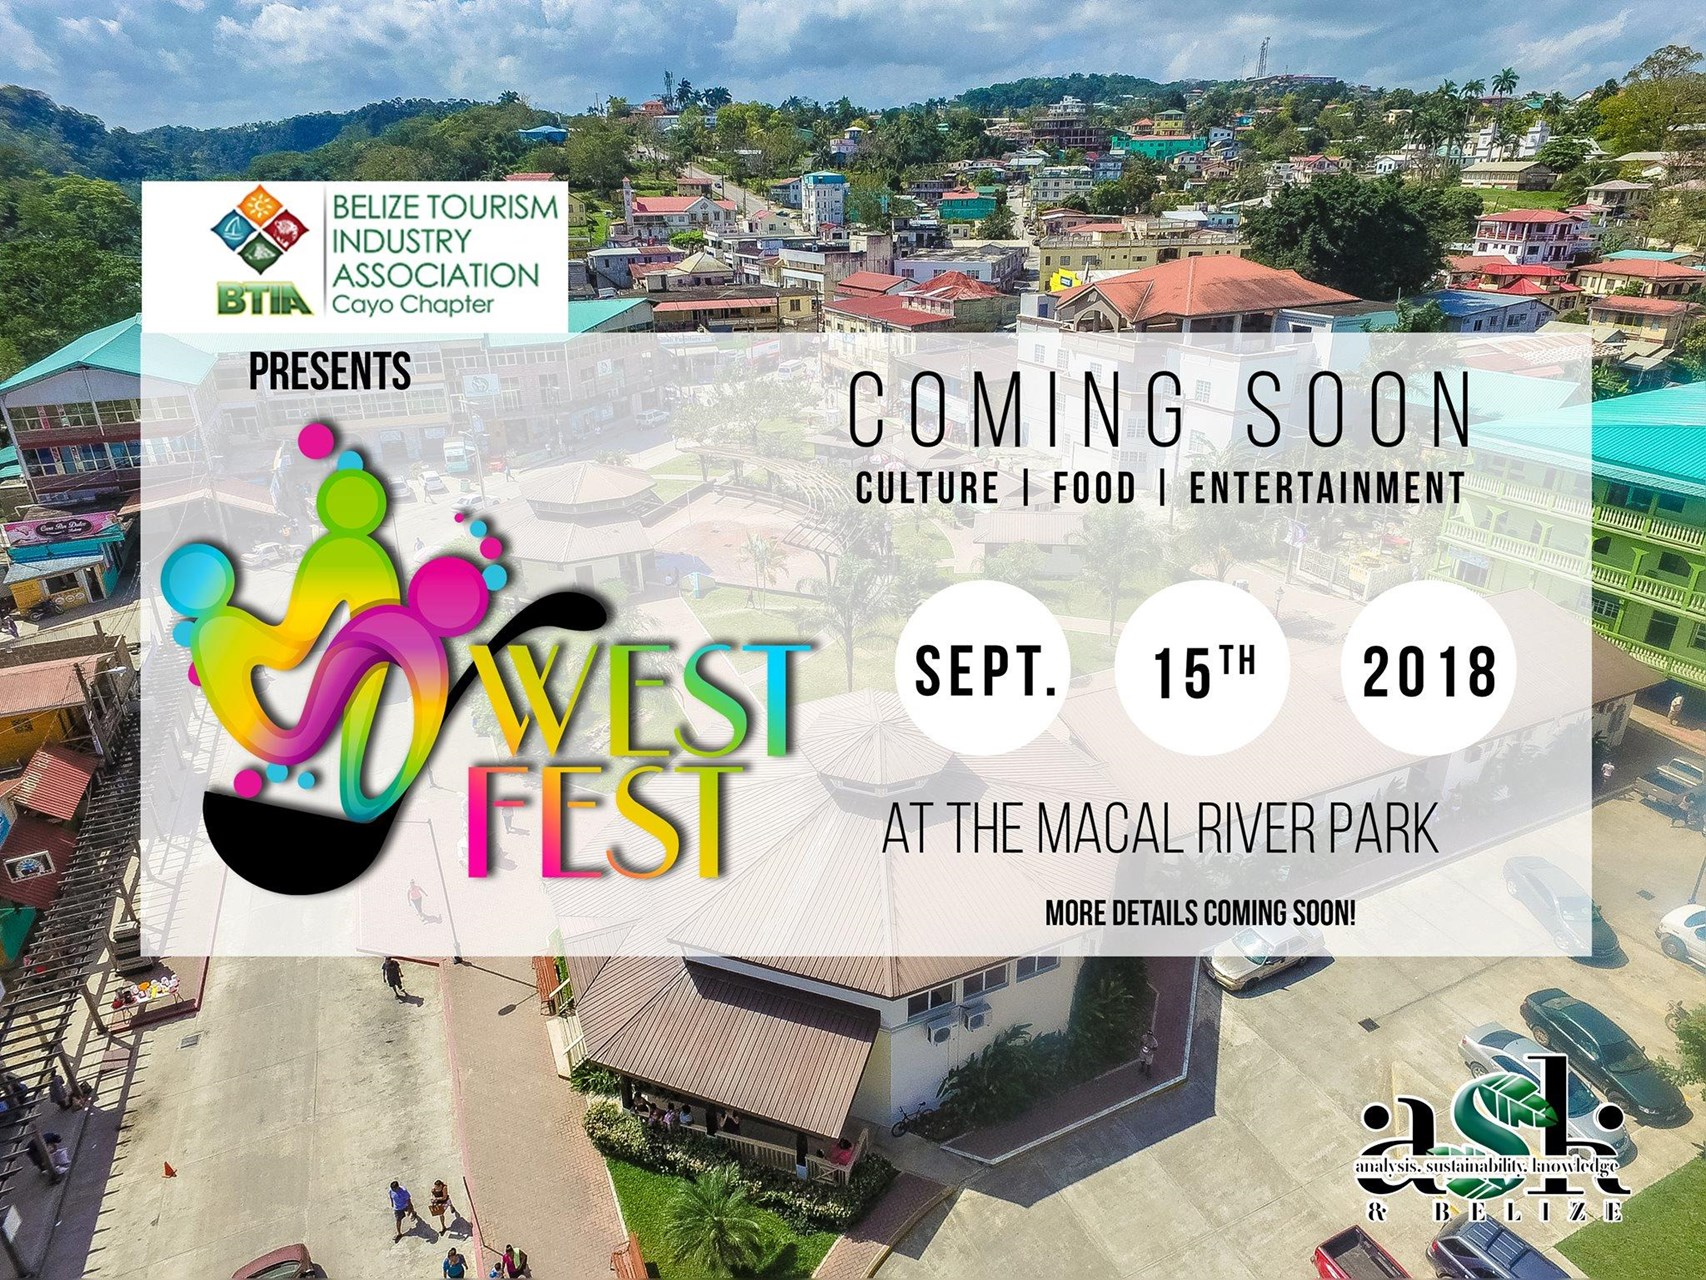 West Fest Comes to Cayo